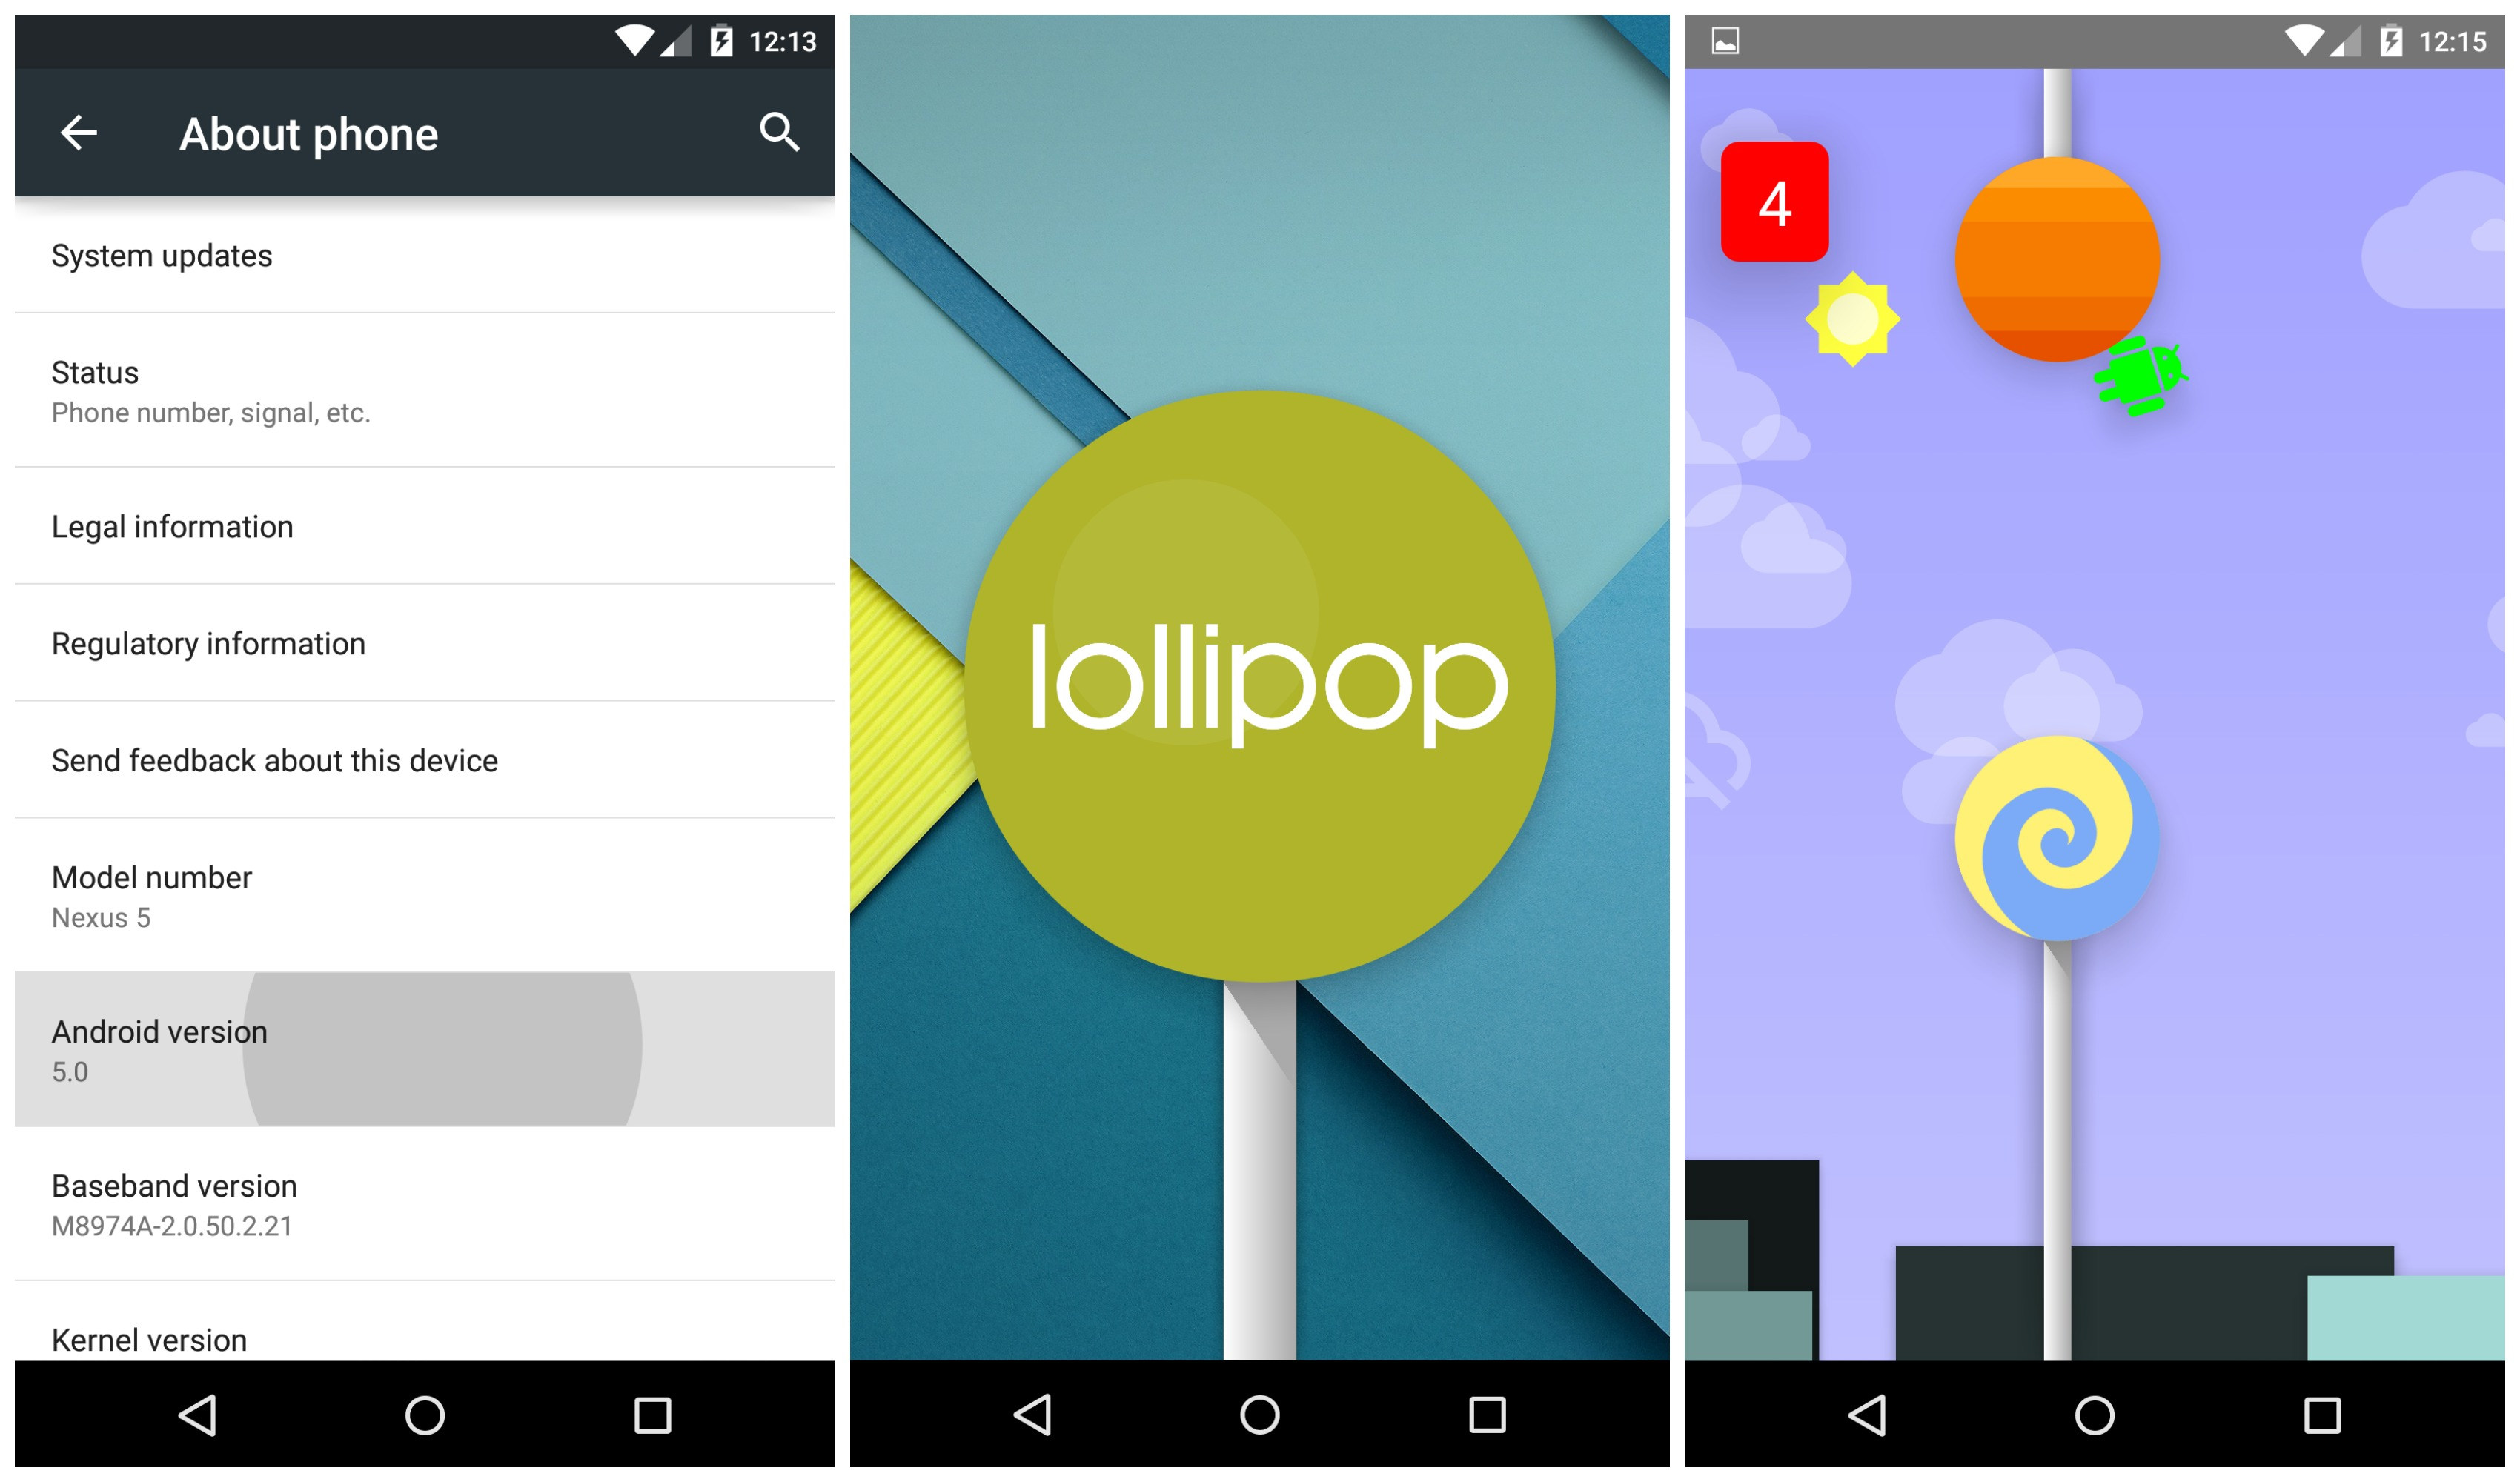 Hands-on: Android 5 0 Lollipop on the Nexus 5 [VIDEO]